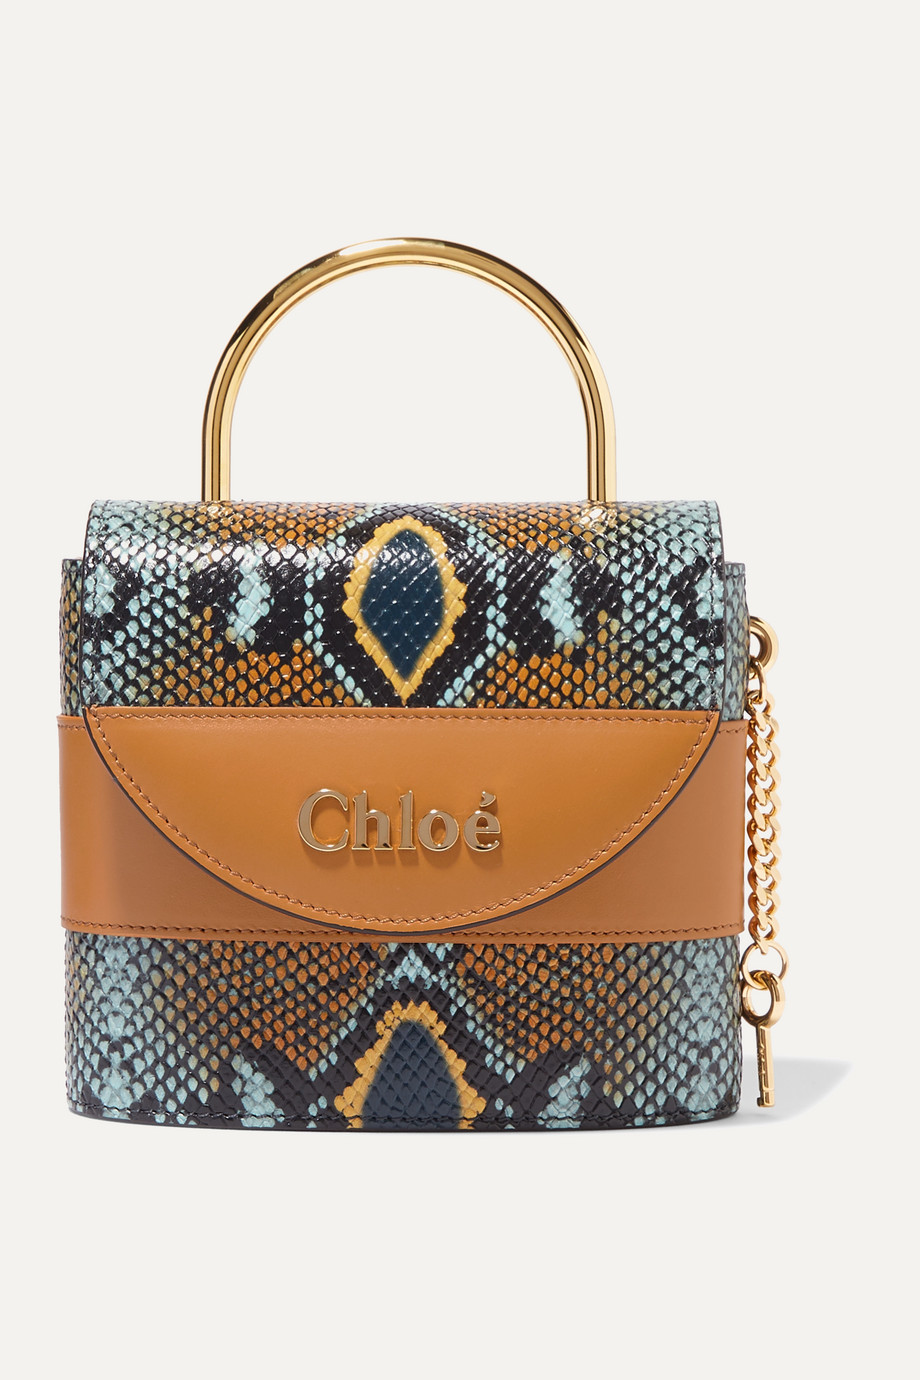 Chloé Aby Lock small snake-effect leather shoulder bag